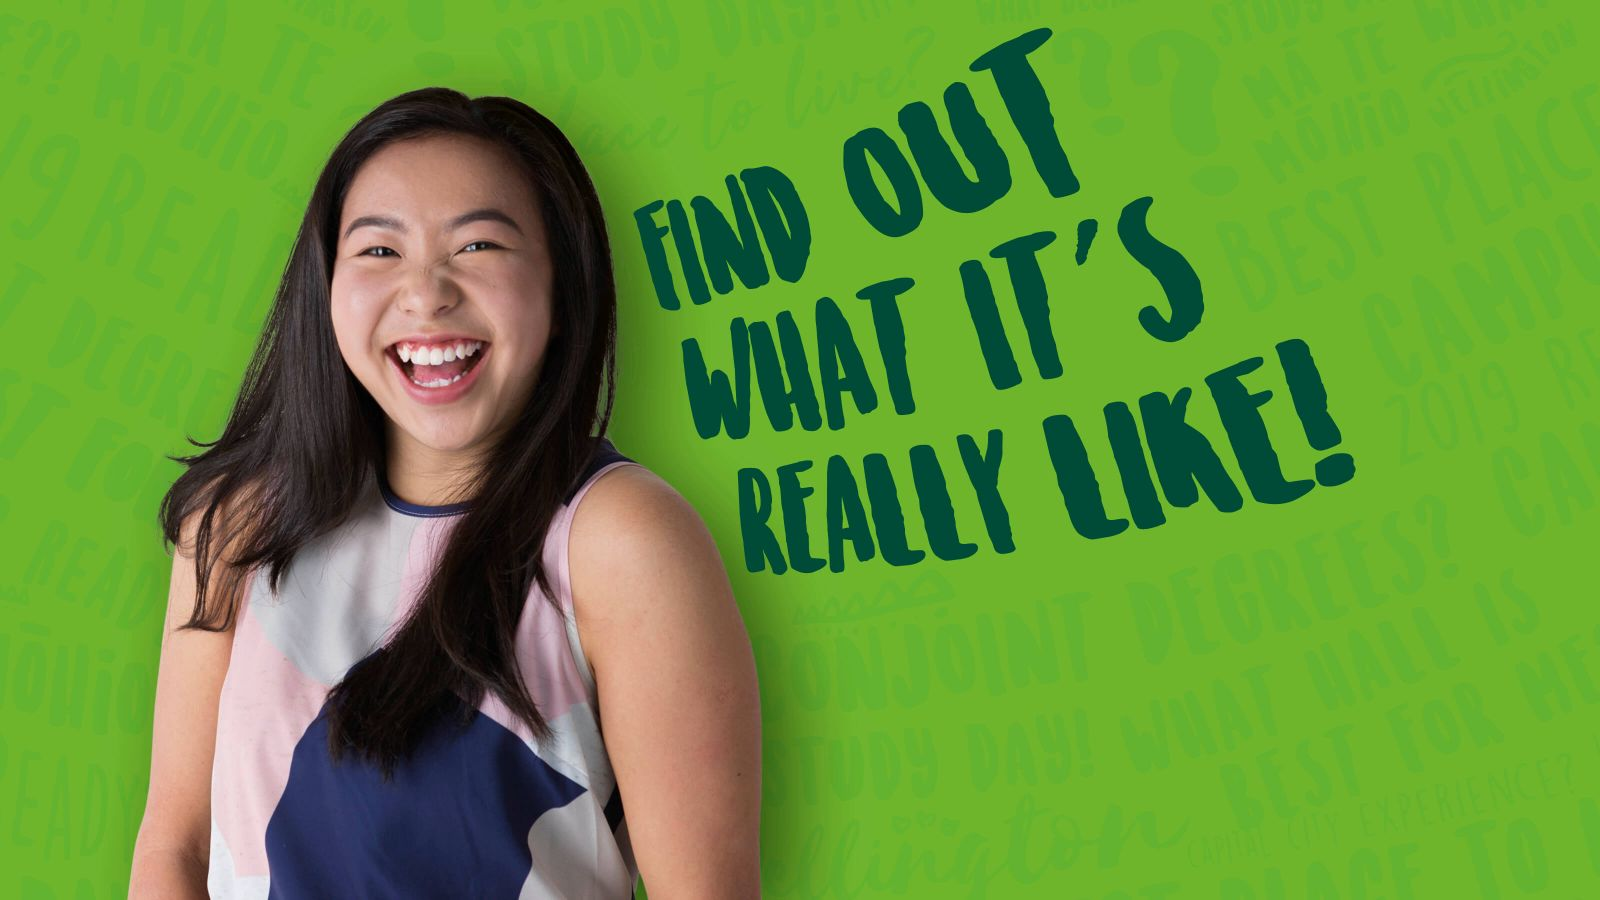 Smiling young Asian student Jessie against a green background with bubble text reading 'Find out what it's really like!'